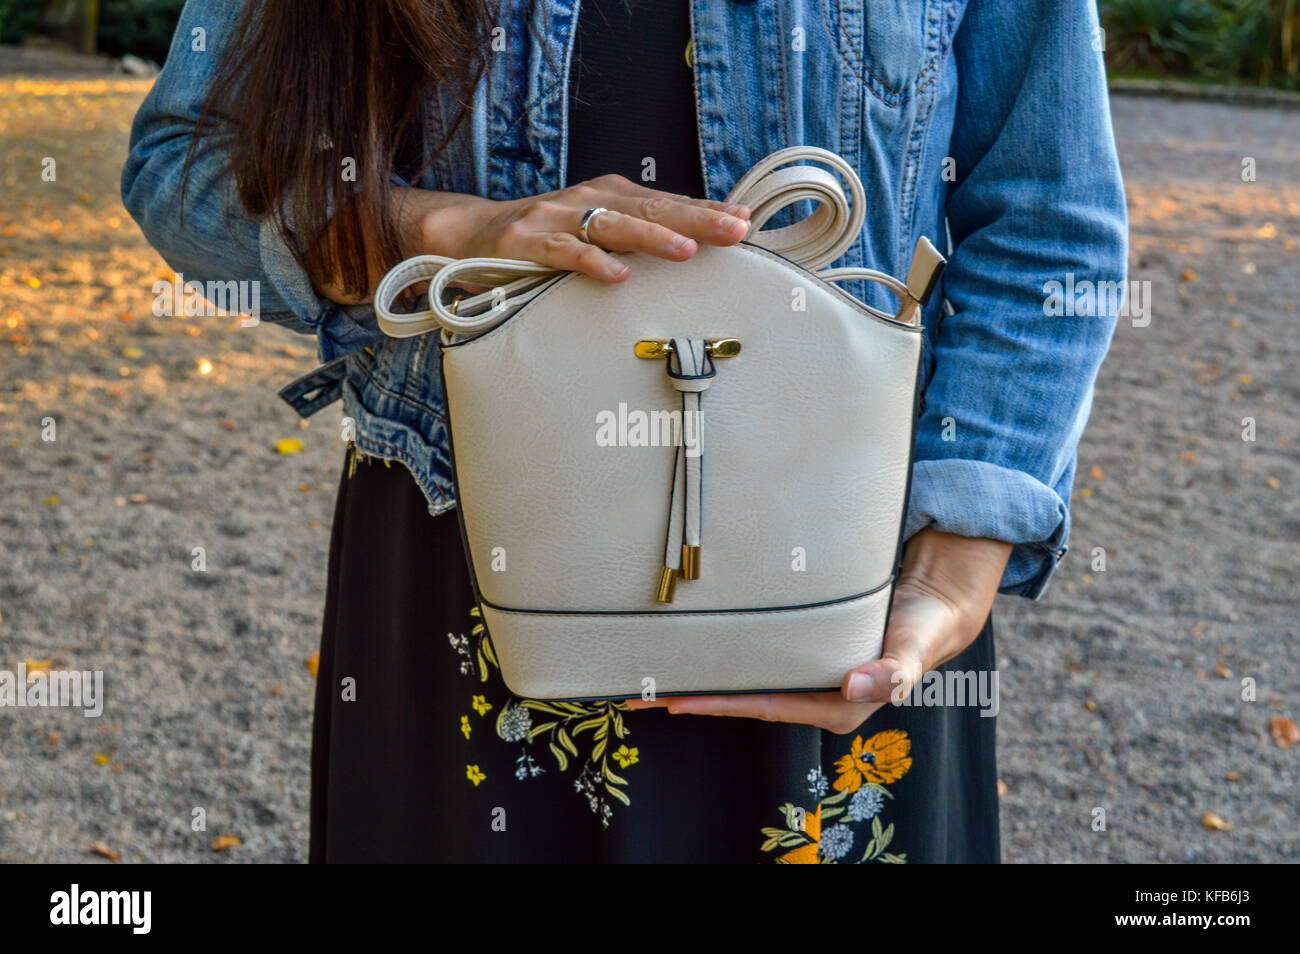 A young woman, casually dressed, wearing a floral dress and a denim jacket, holding a mini bag - Stock Image